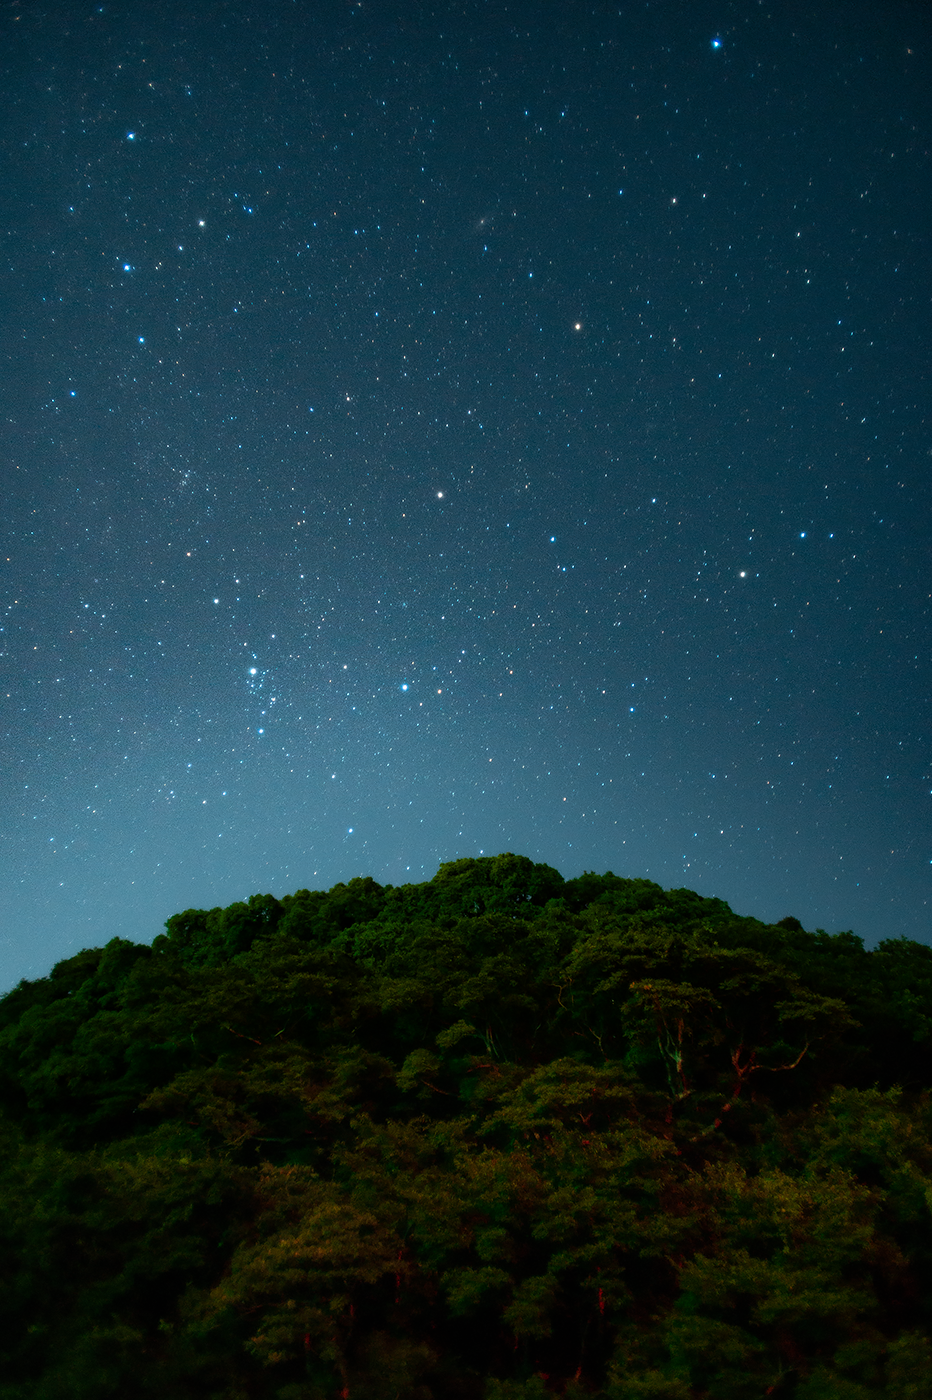 Nikon Df:NIKKOR-N・C Auto 24mm F2.8 + Kenko Starry Night & MC Pro Softon(A):ISO1600 f2.8 30s